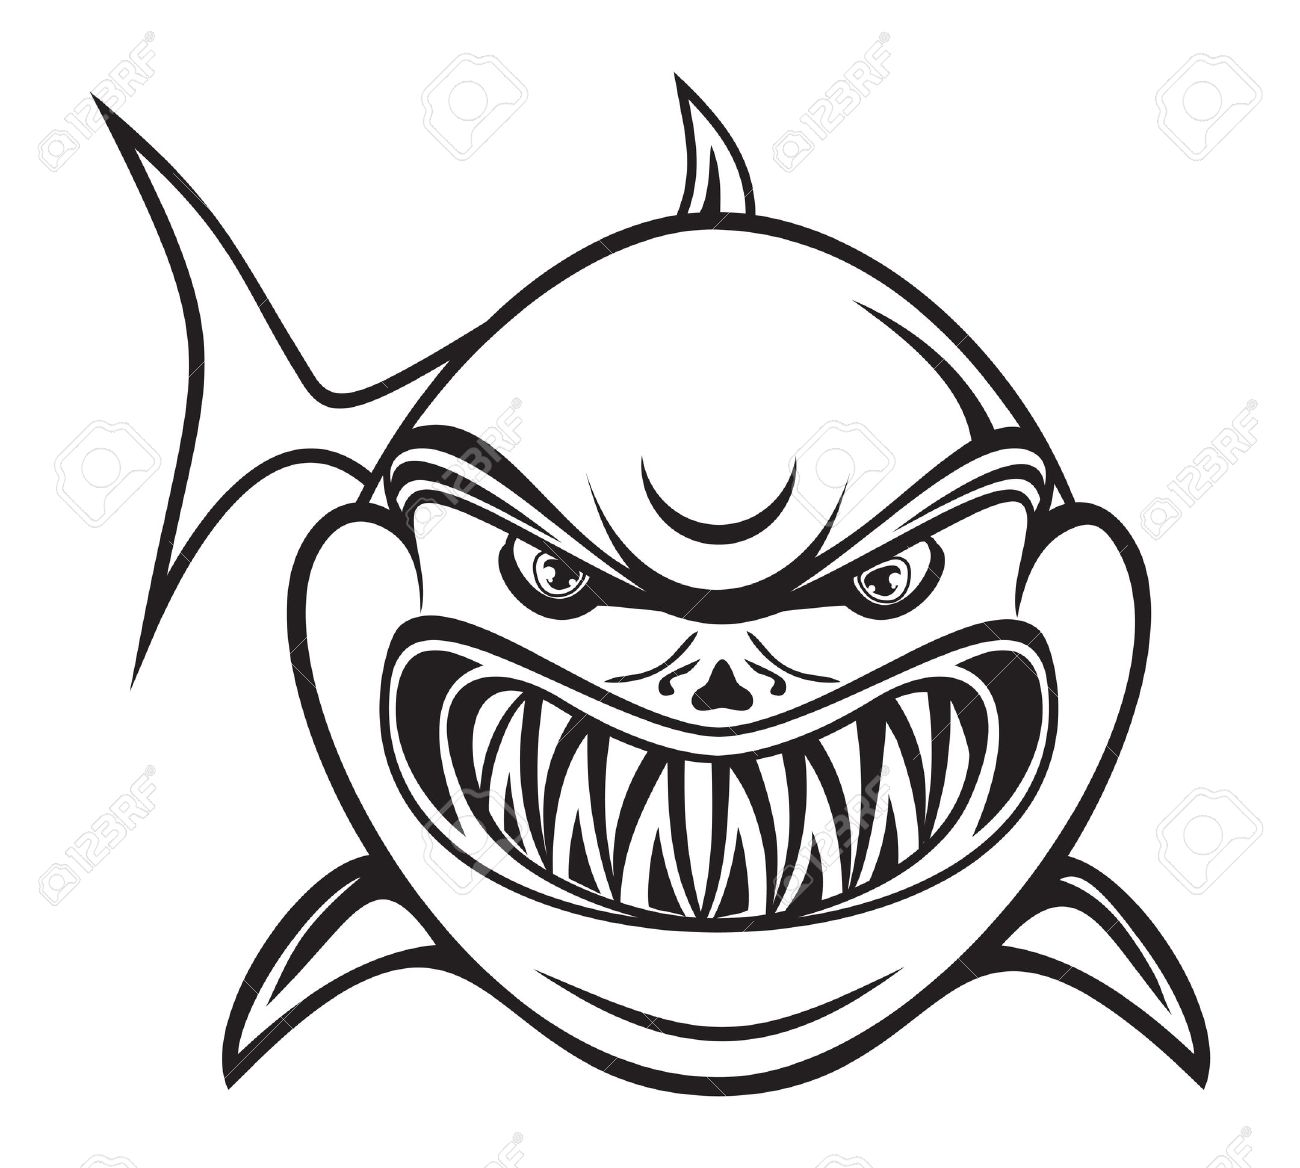 1300x1168 Angry Shark Black White Royalty Free Cliparts, Vectors,